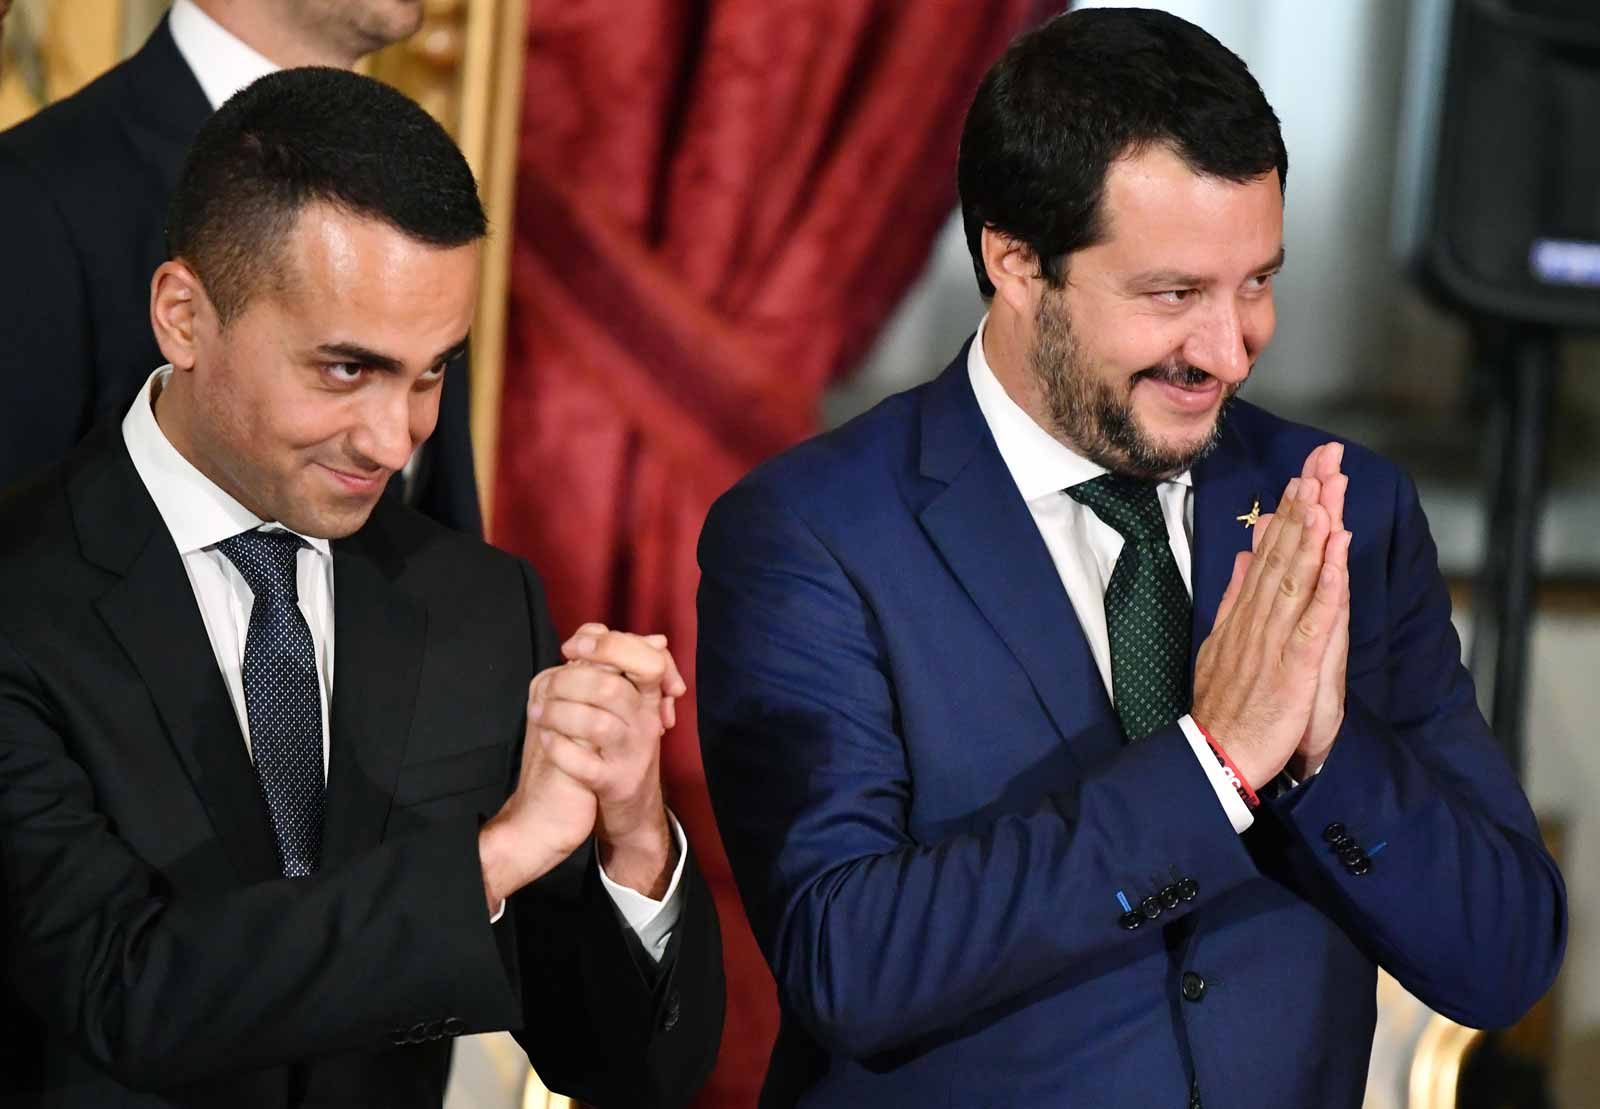 Italy's Deputy Prime Minister Luigi Di Maio, of the left-wing Five Star Movement, and Deputy Prime Minister Matteo Salvini, of the right-wing Northern League, during the swearing-in ceremony of the new government led by Prime Minister Giuseppe Conte, Quirinale Palace, Rome, June 1, 2018